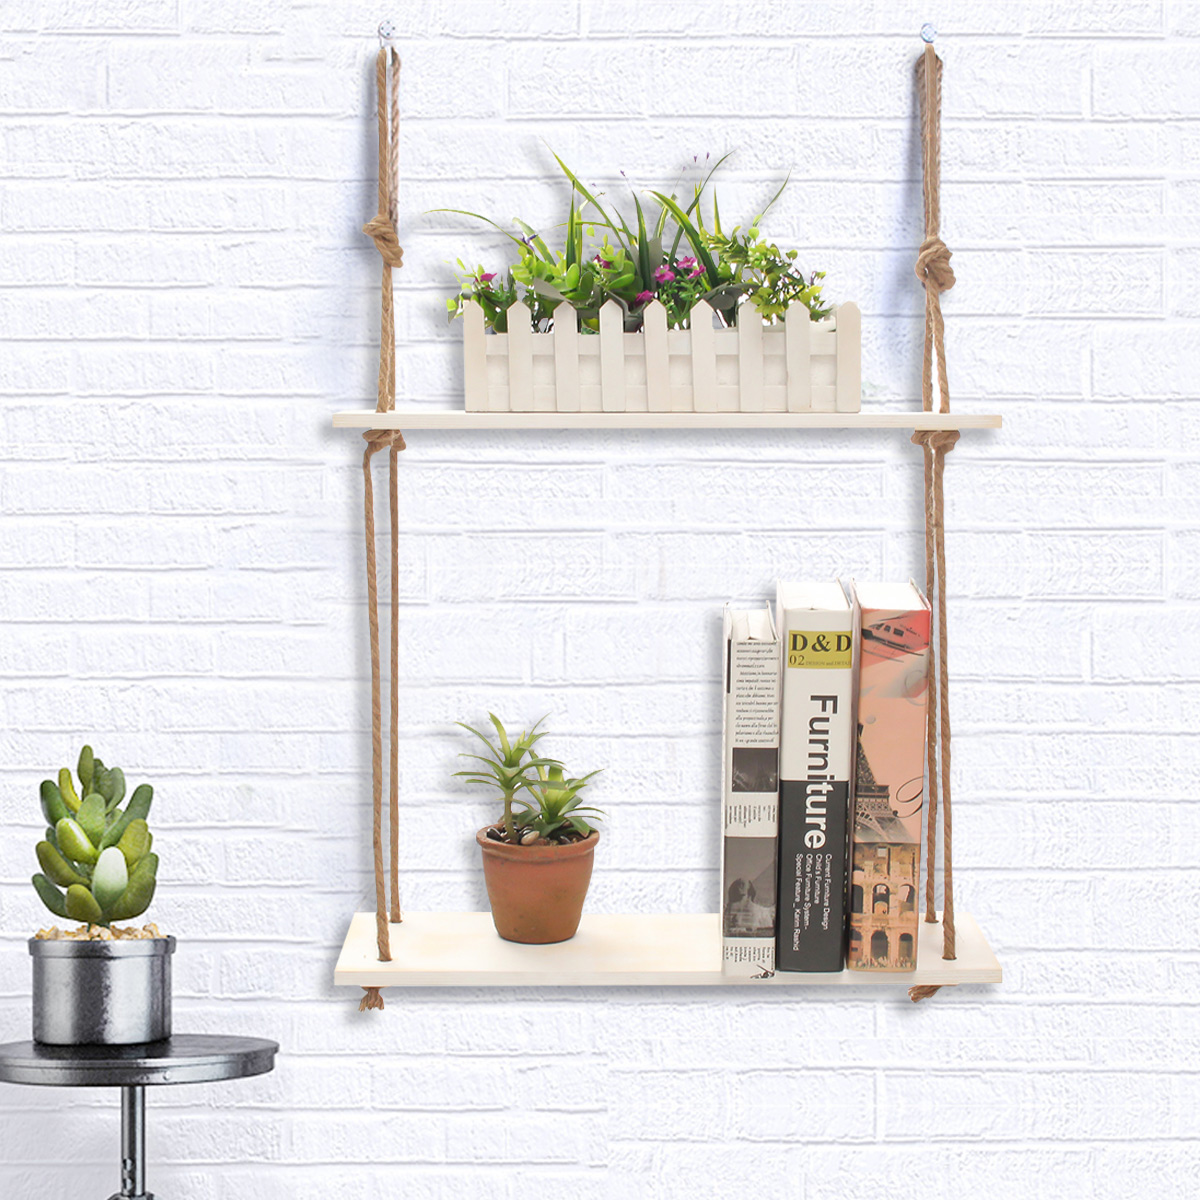 3 Tier Wood Wall Mount Shelf Stand Storage Book Shelves Display Rack Shelving Bracket Bathroom